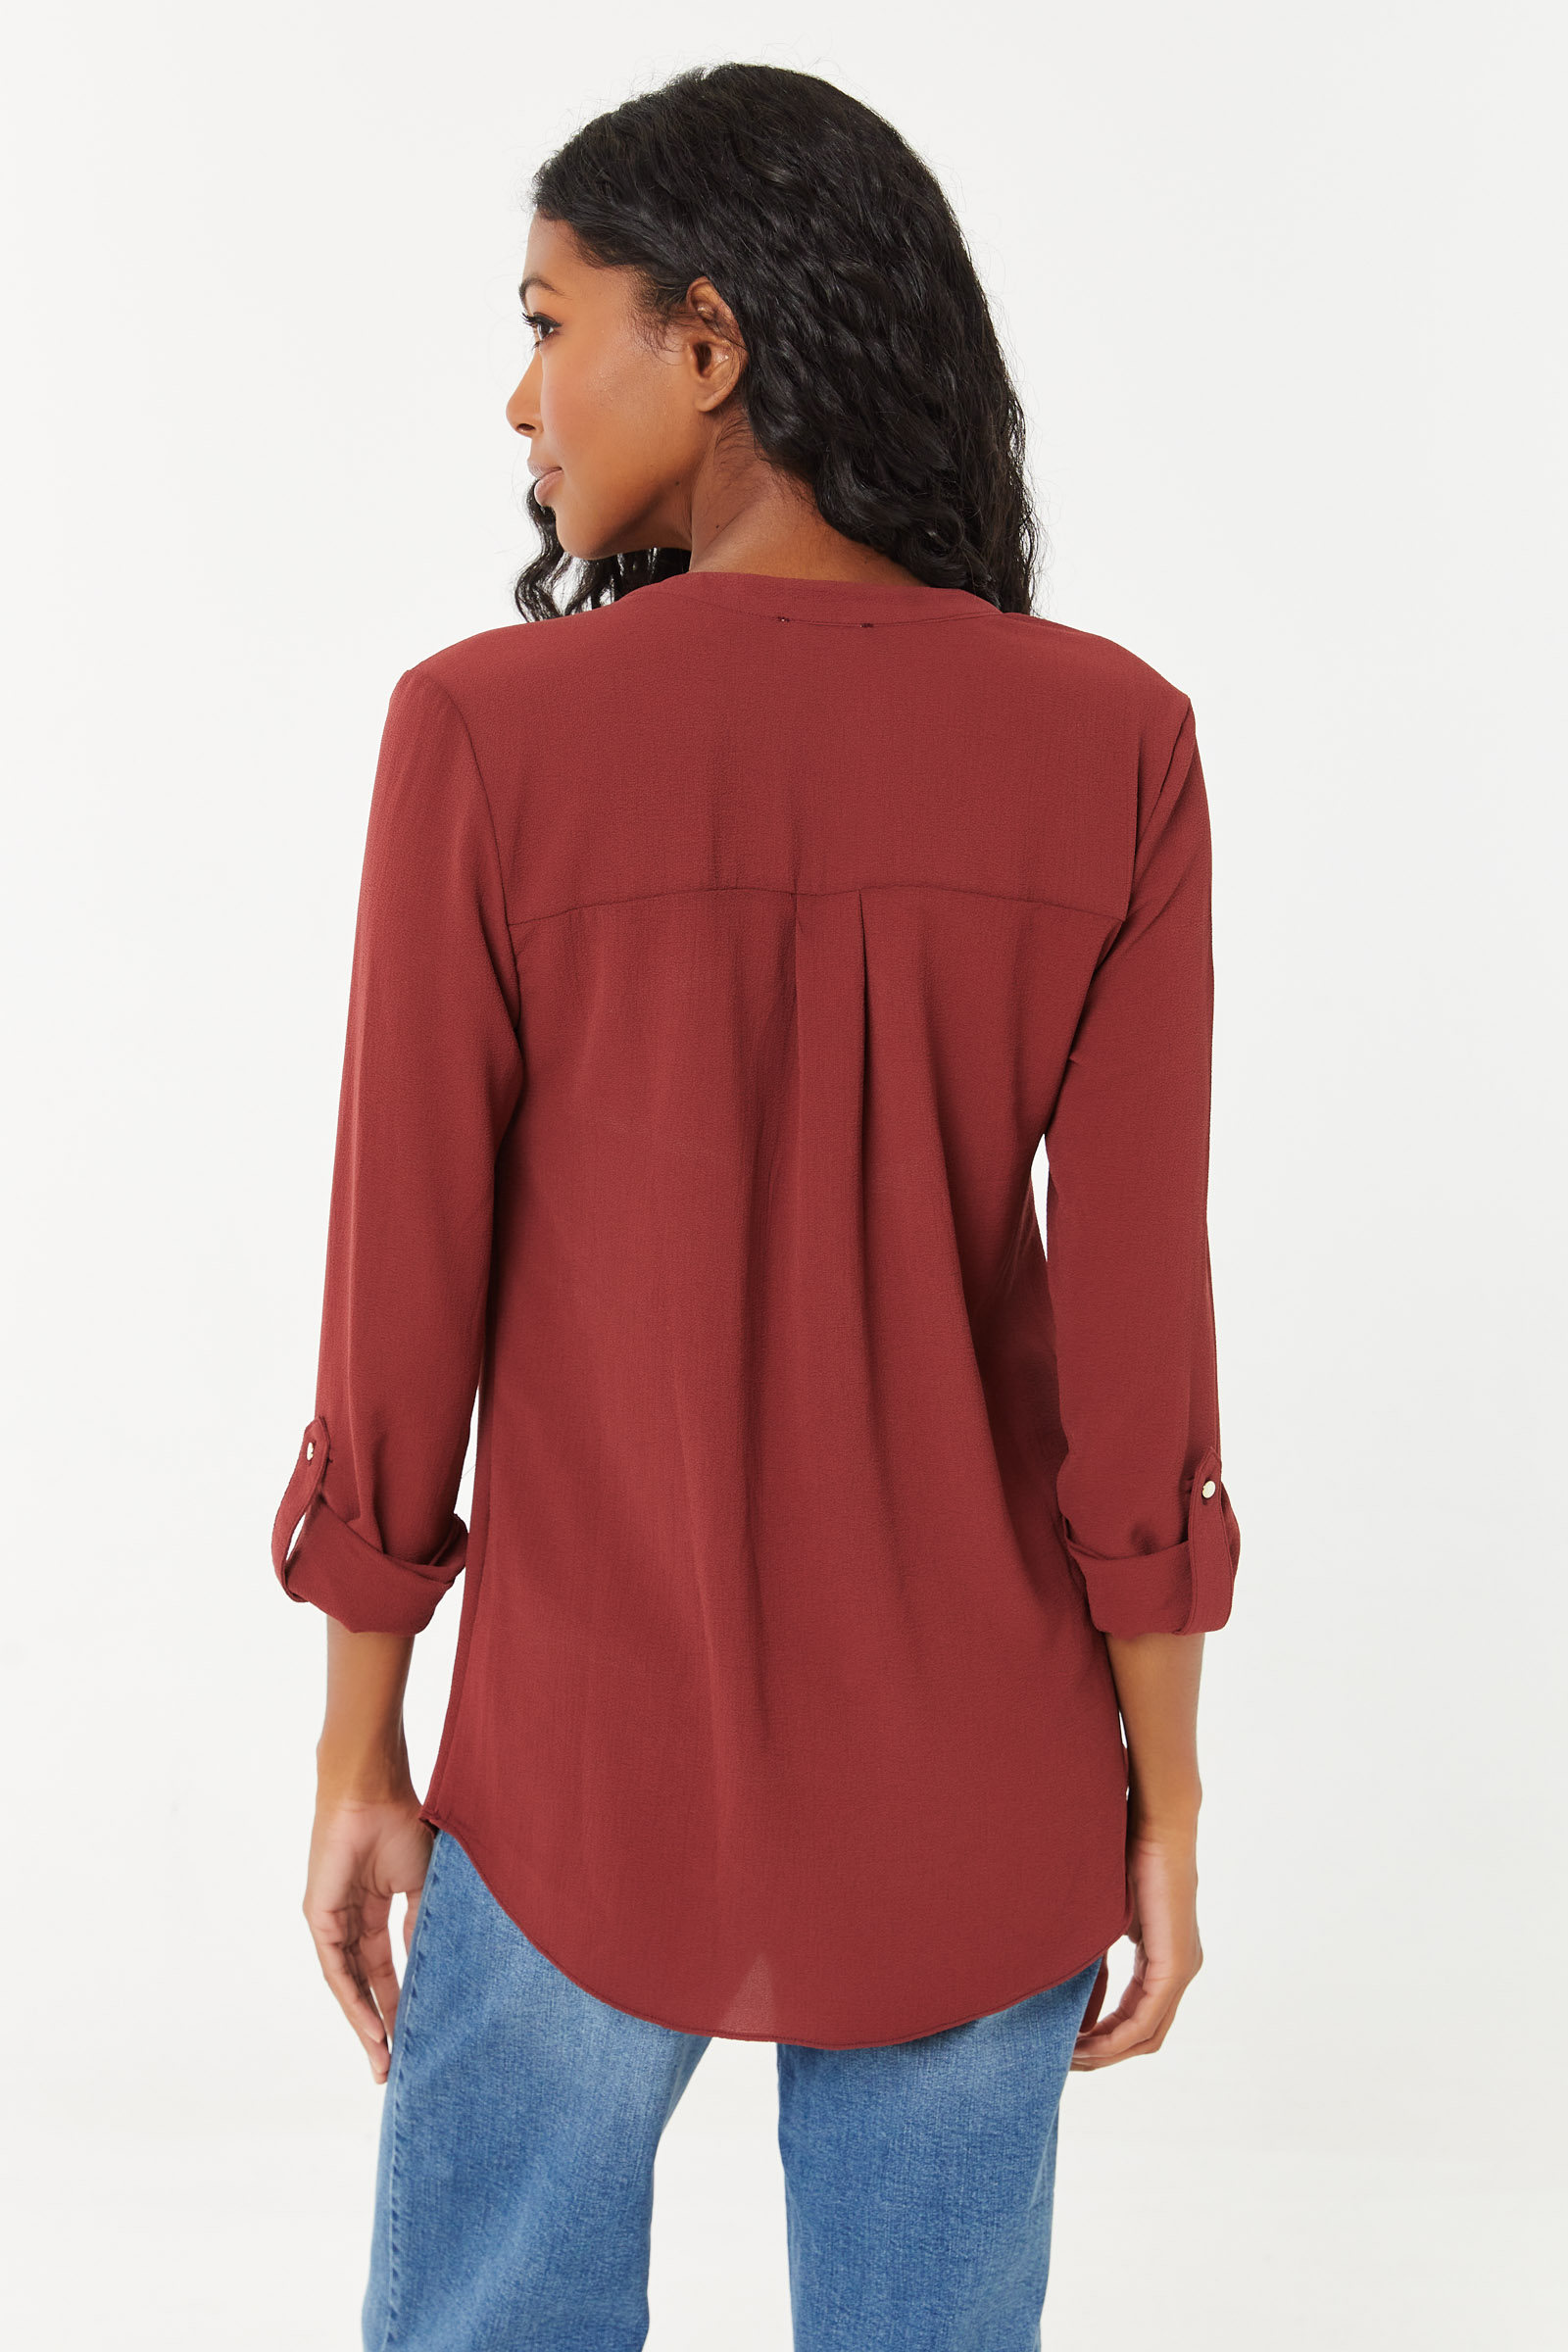 Slip On Blouse with Zip Pockets